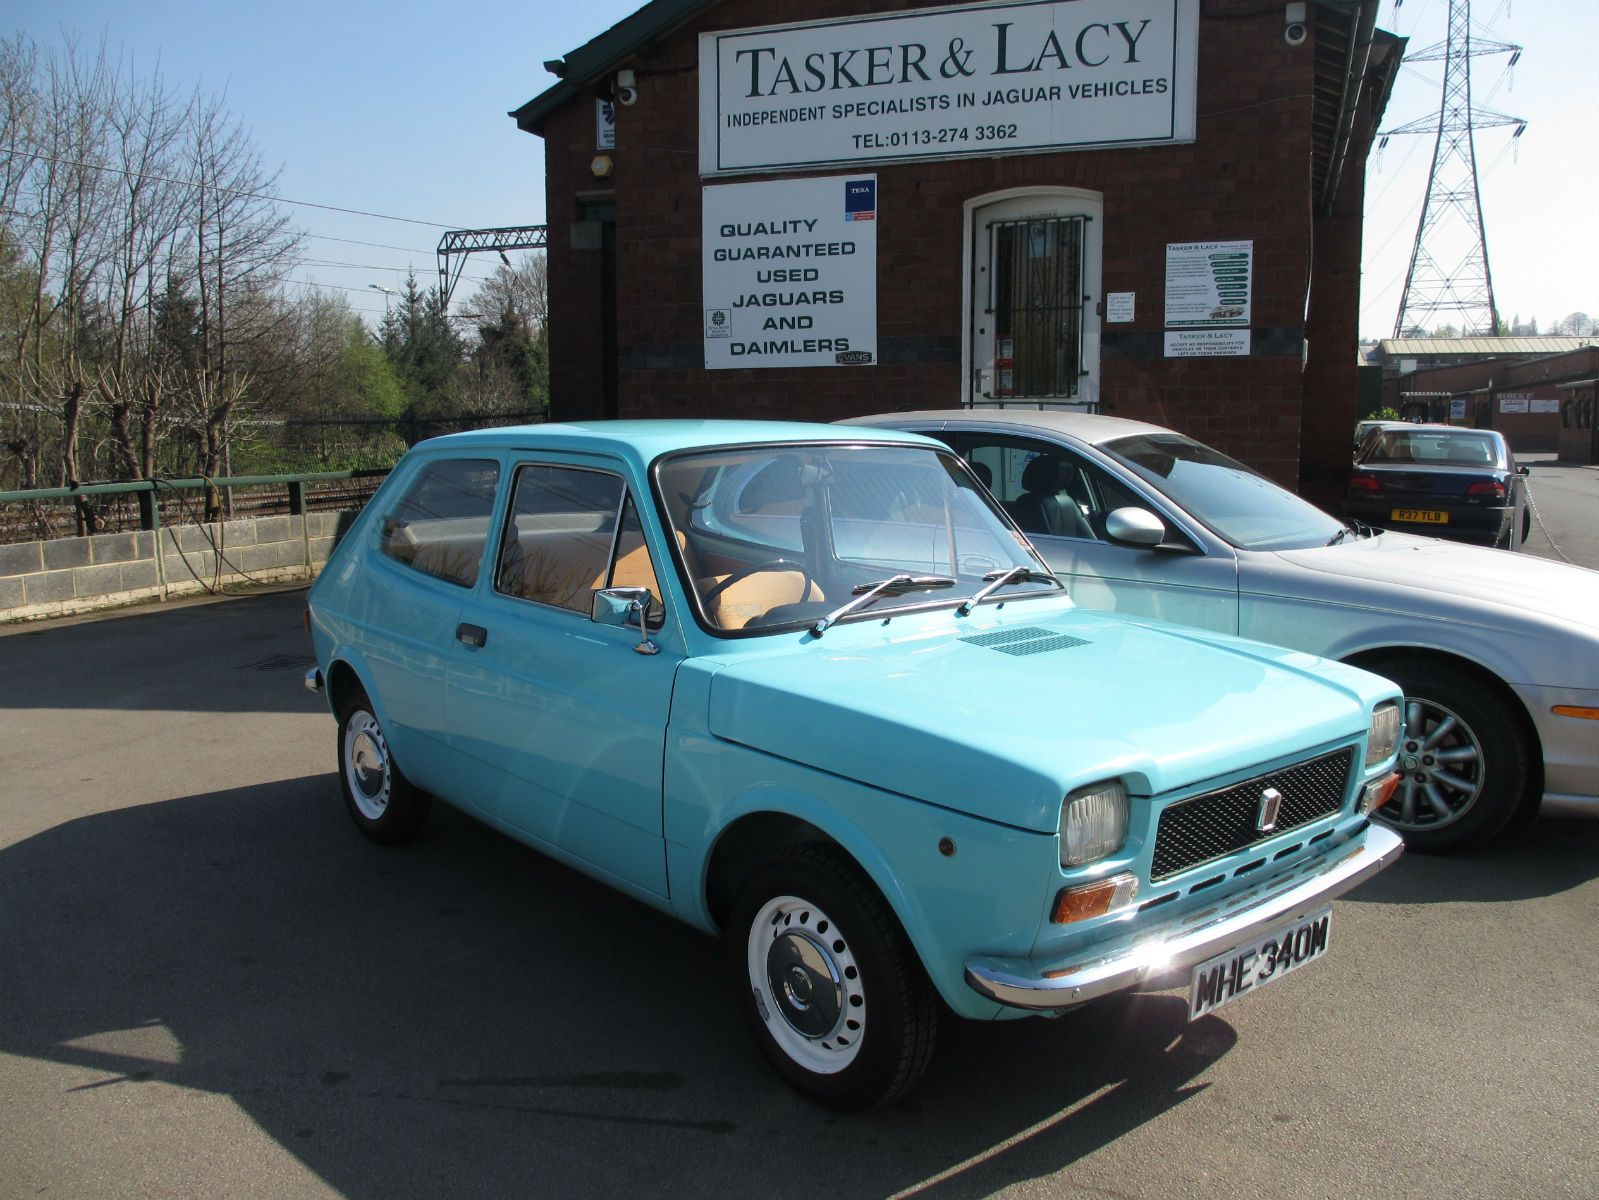 1974 Fiat 127 903cc Light Blue Time Warp Condtion Just 1710 Miles